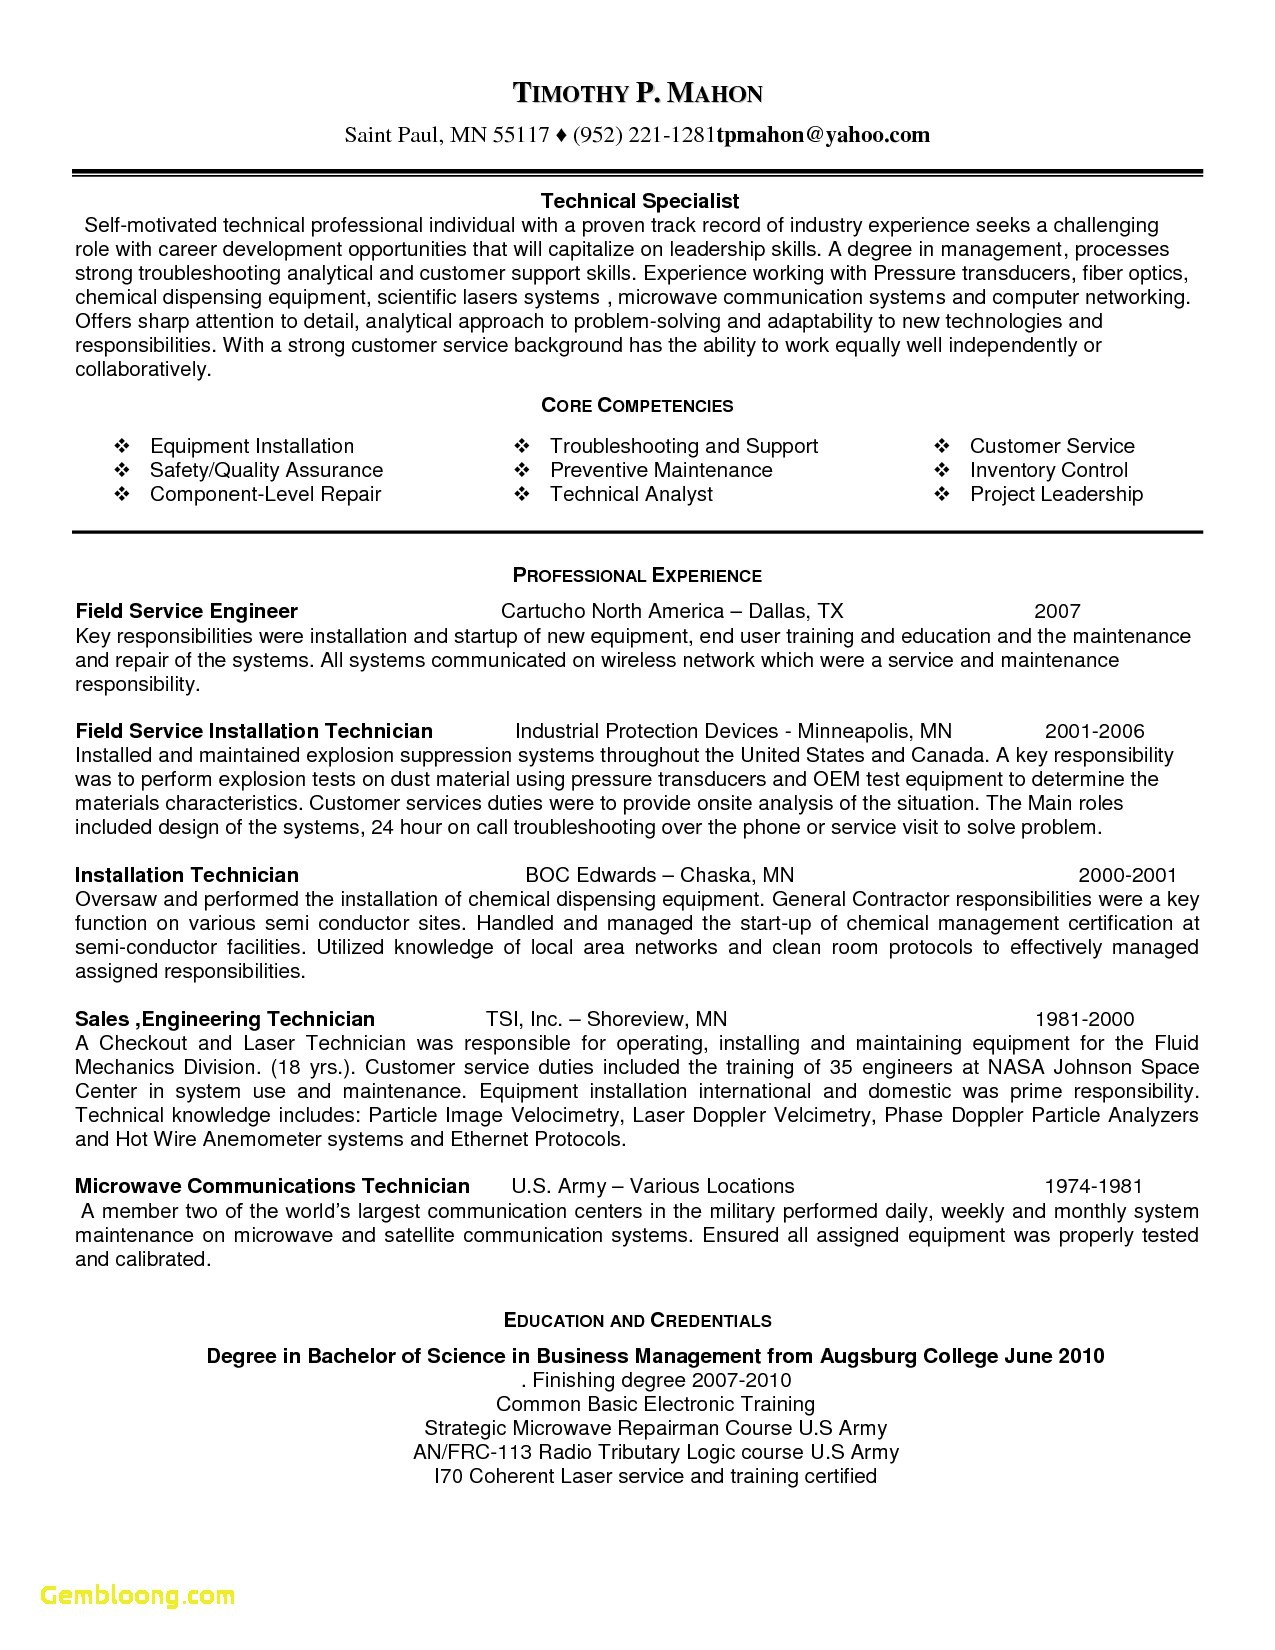 Ultrasound Resume Template - General Contractor Resume Inspirational Ultrasound Resume Unique